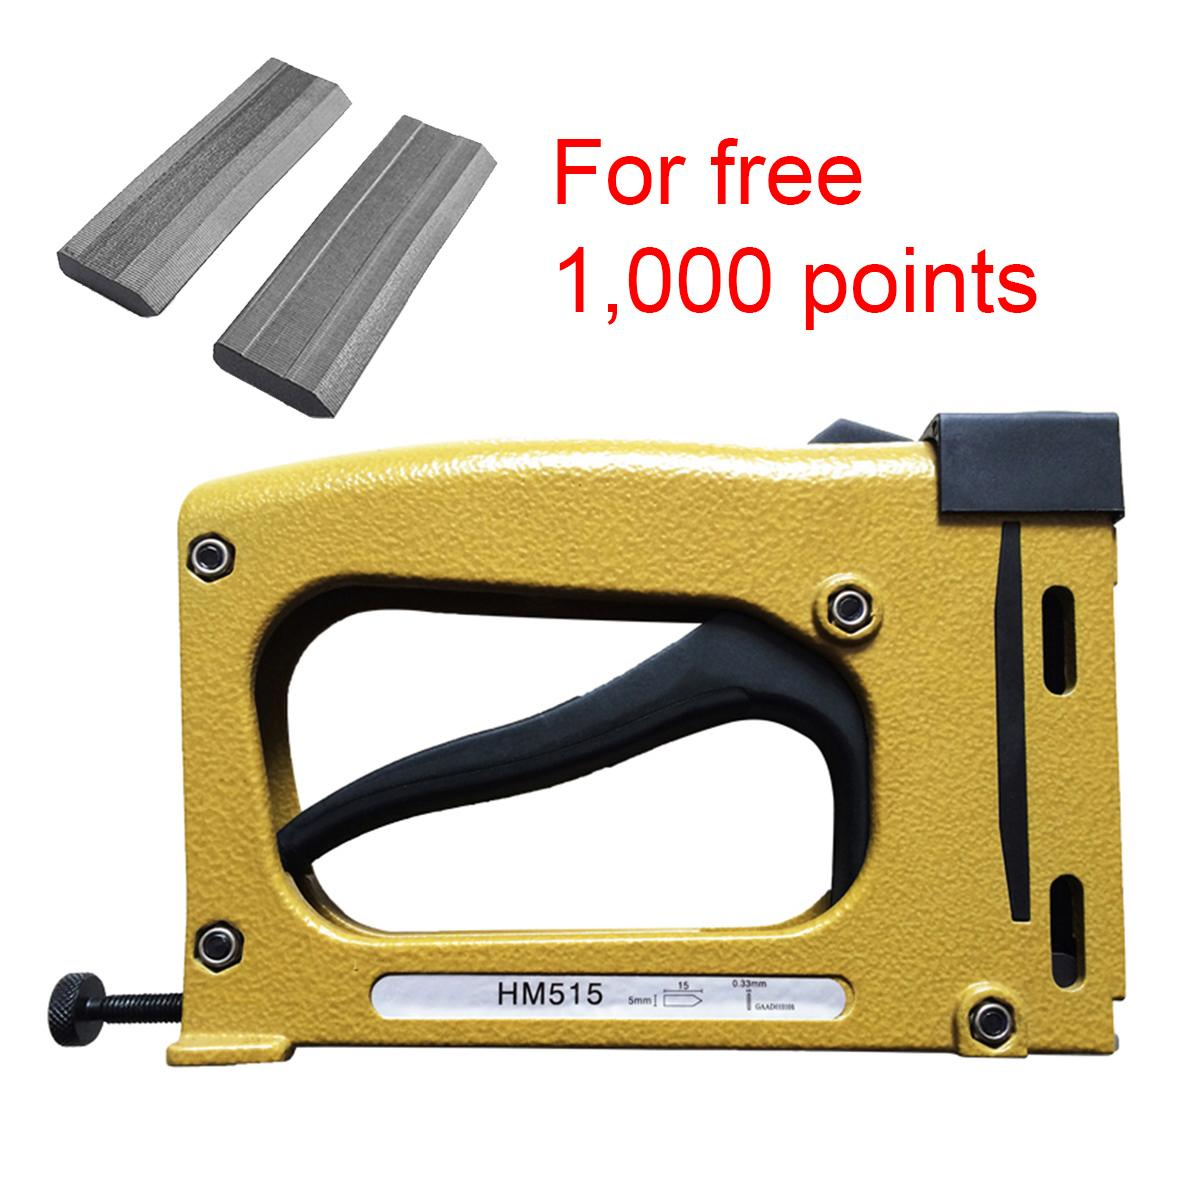 Manual Metal Point Driver Stapler Picture Framing Tool + 1000Pcs Points Point Driver Stapler Picture Framing Tool Kit Durable